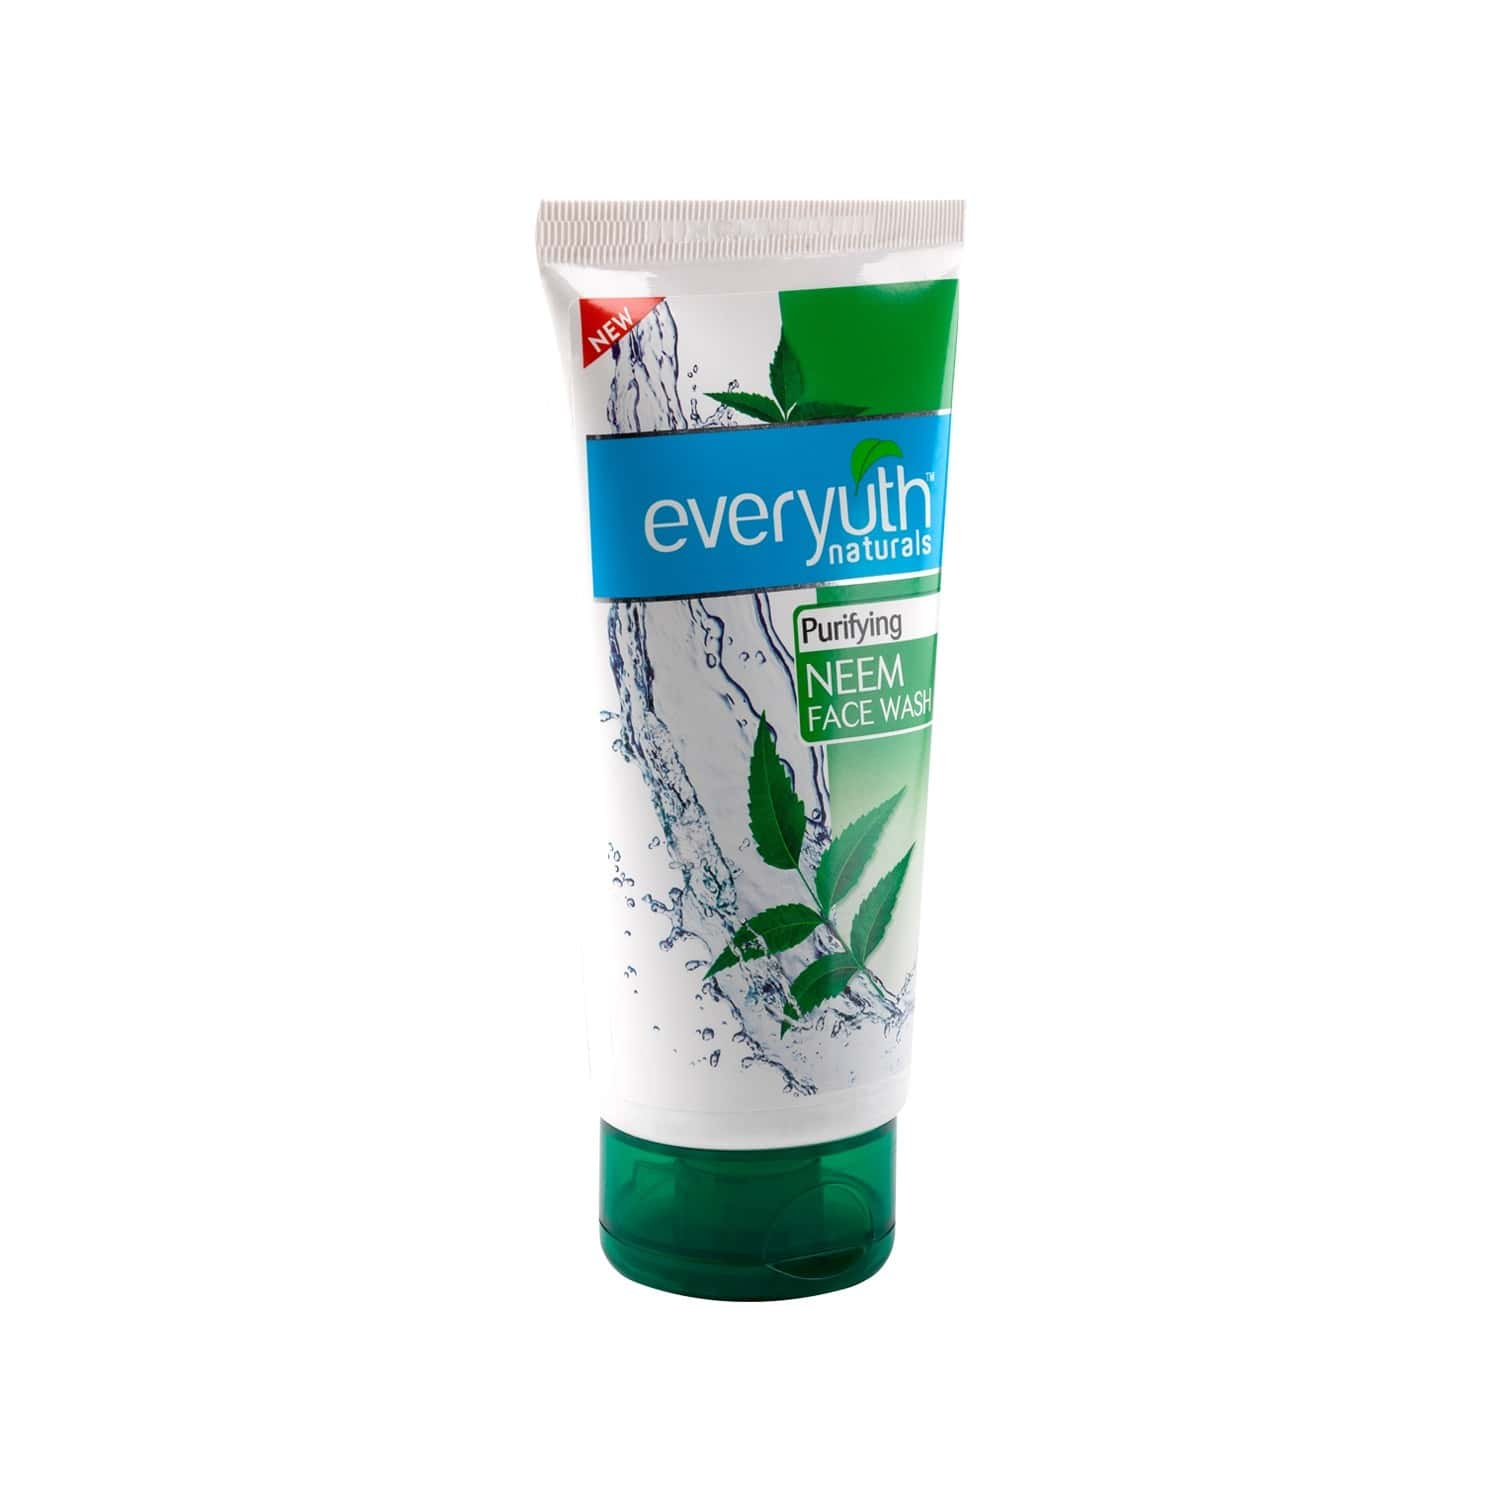 Everyuth Naturals Purifying Neem Face Wash 150 Gm